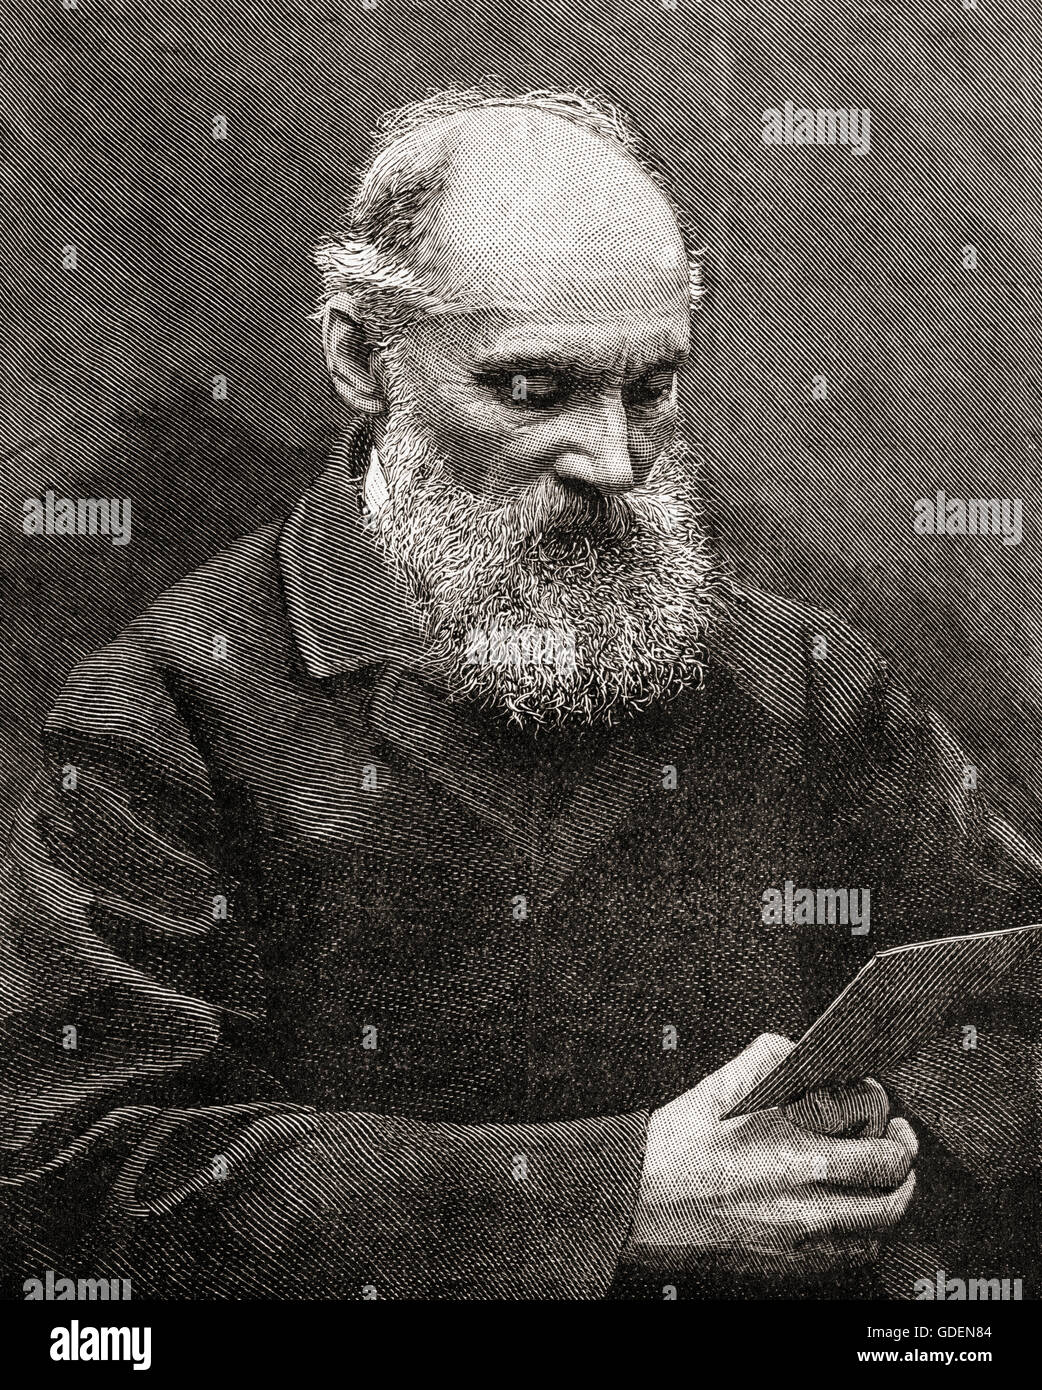 William Thomson, 1st Baron Kelvin, 1824 – 1907.  Belfast born mathematical physicist and engineer. - Stock Image